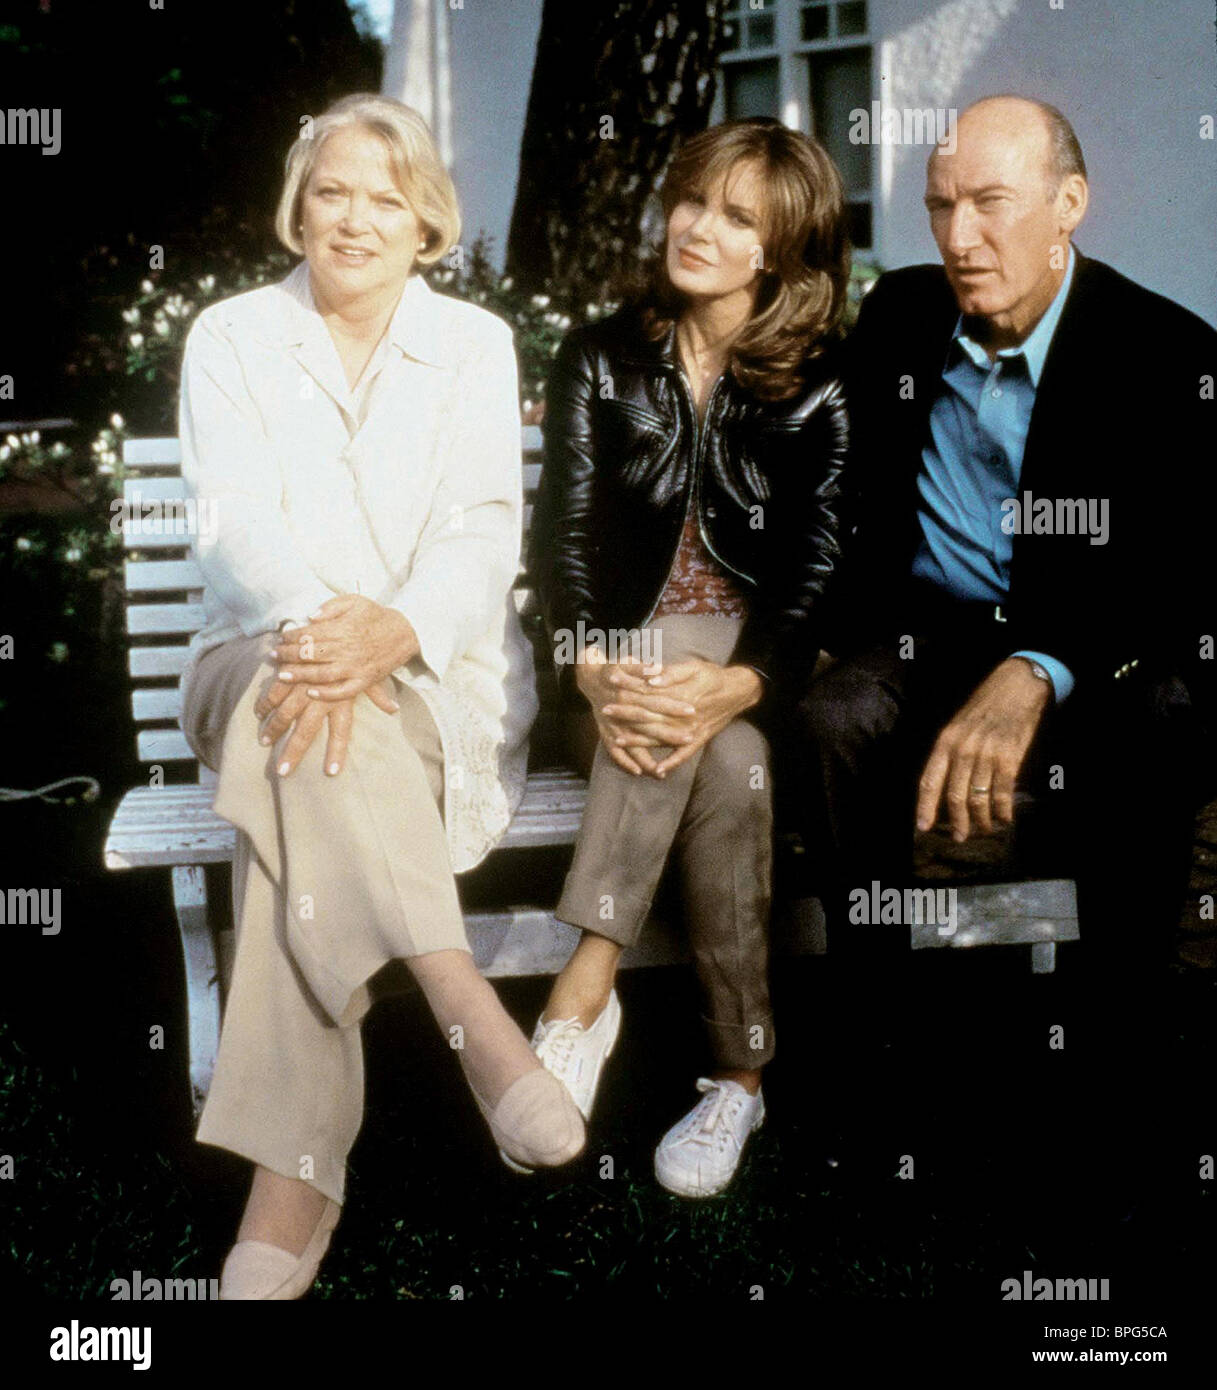 LOUISE FLETCHER, JACLYN SMITH, ED LAUTER, MARRIED TO A STRANGER, 1997 - Stock Image